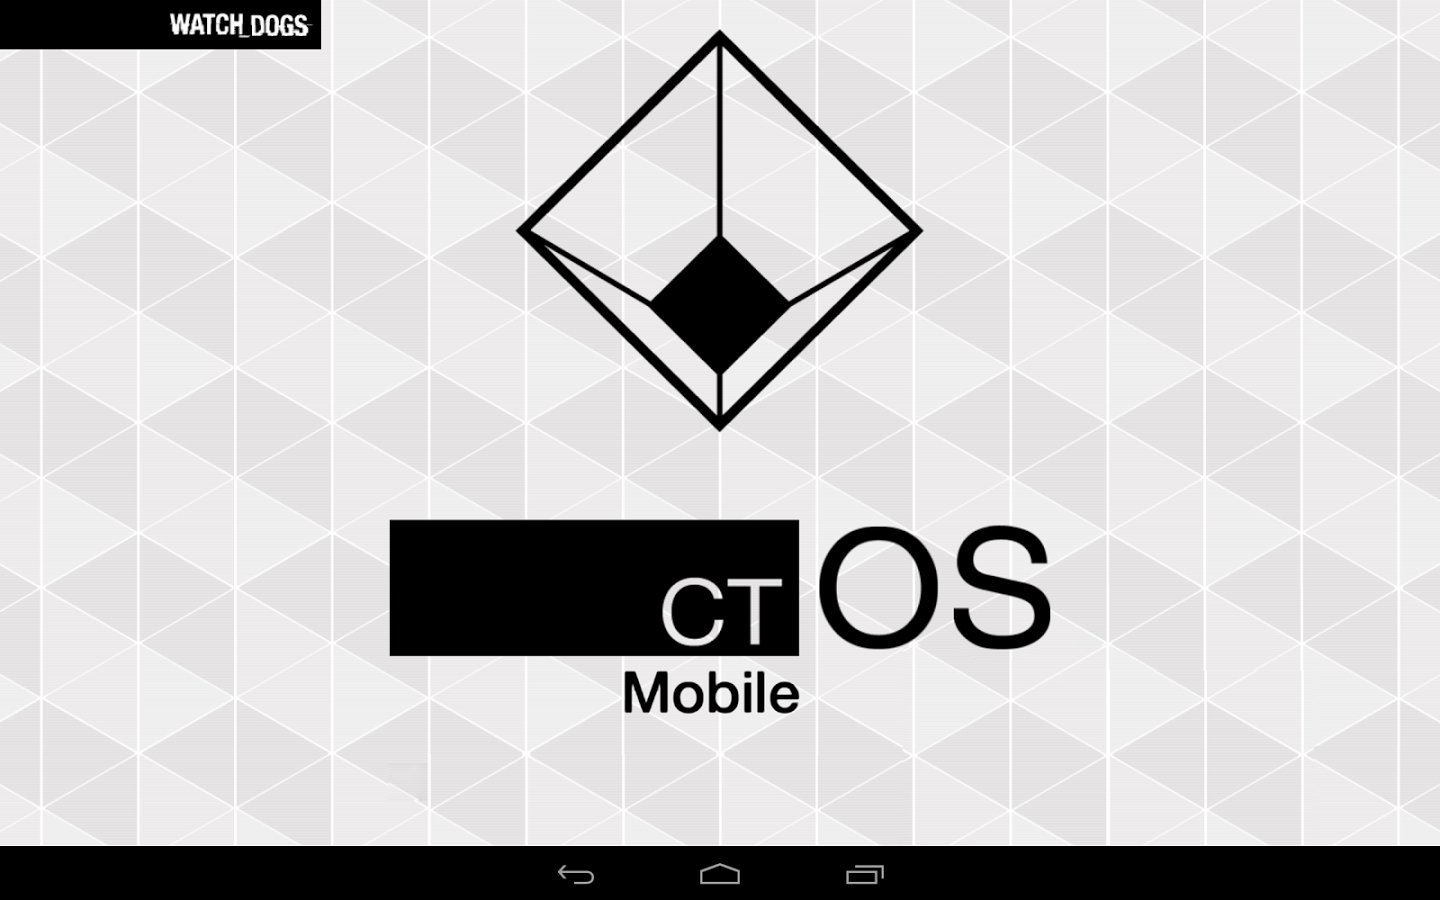 Ctos Iphone Wallpaper